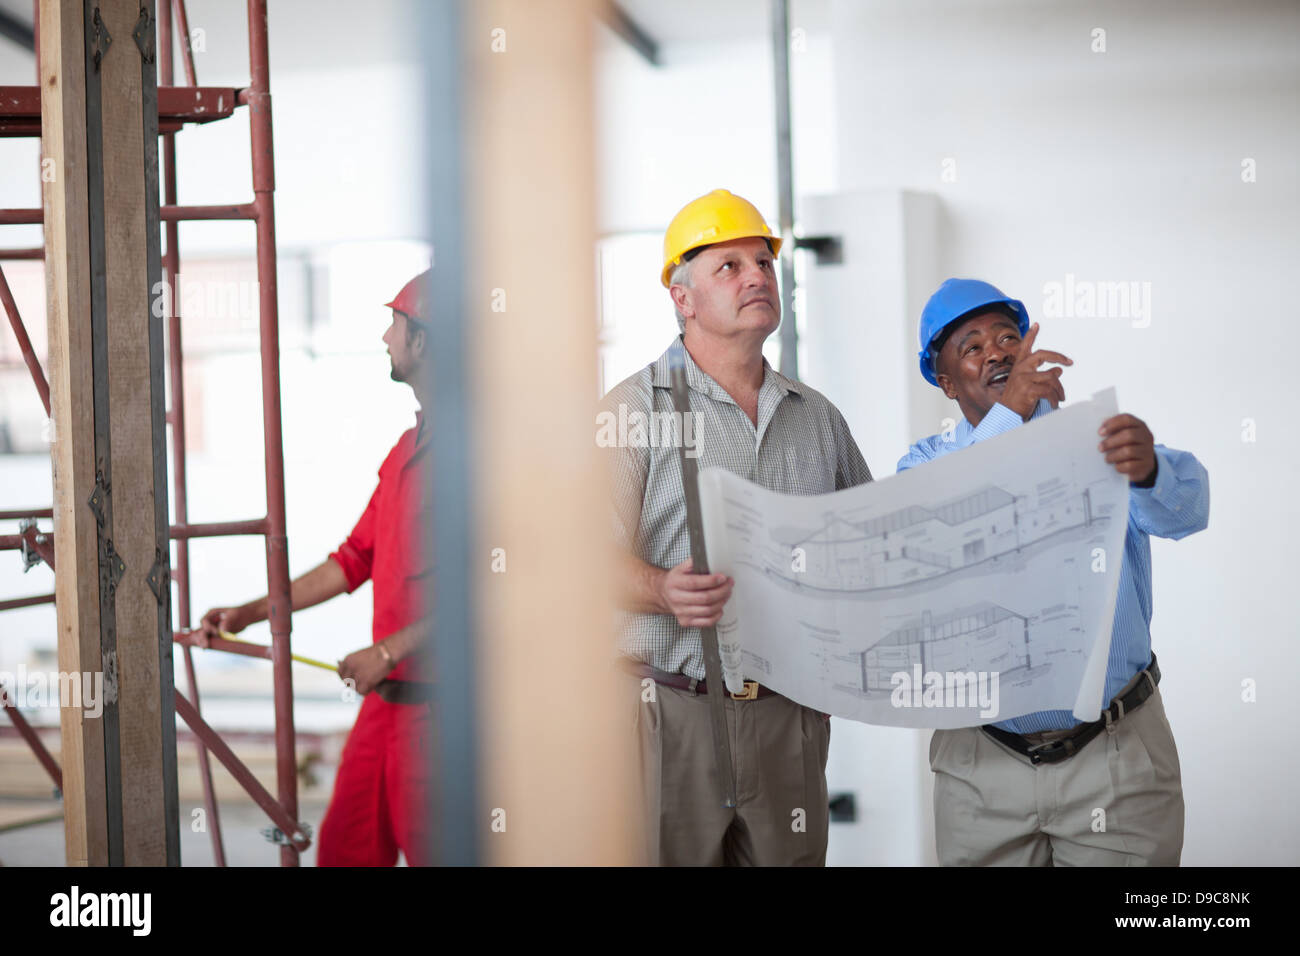 Construction workers taking break site stock photos construction construction workers pointing and looking with blueprint on construction site stock image malvernweather Choice Image